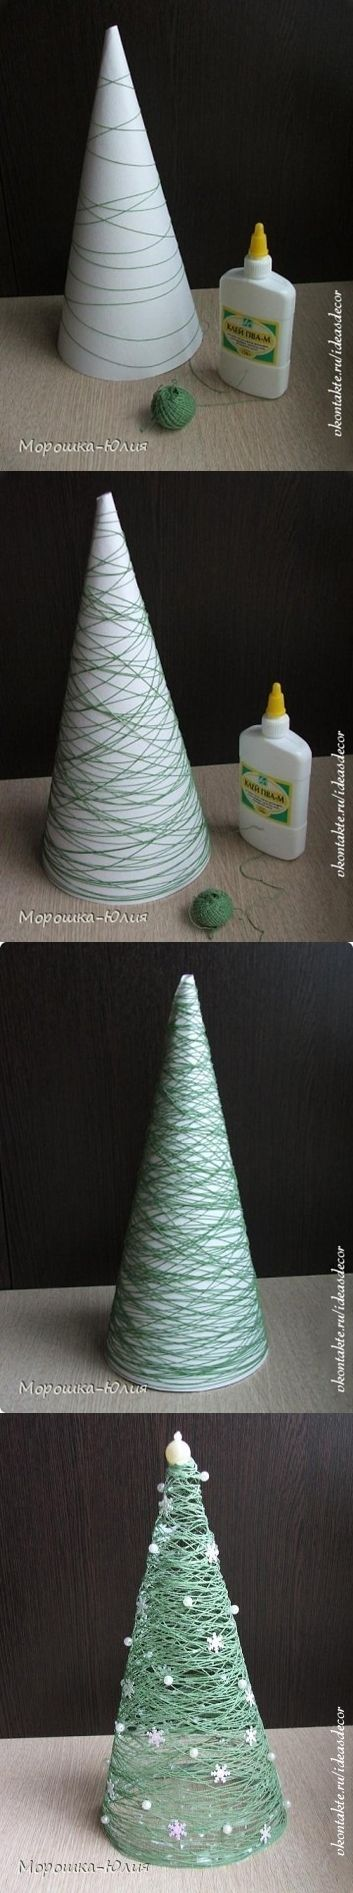 DIY Christmas trees. Make a cone and wrap with plastic. Layer crochet thread dipped in glue around cone. Let dry, then add more layers until completed desired look. Then remove base cone. EASY!: